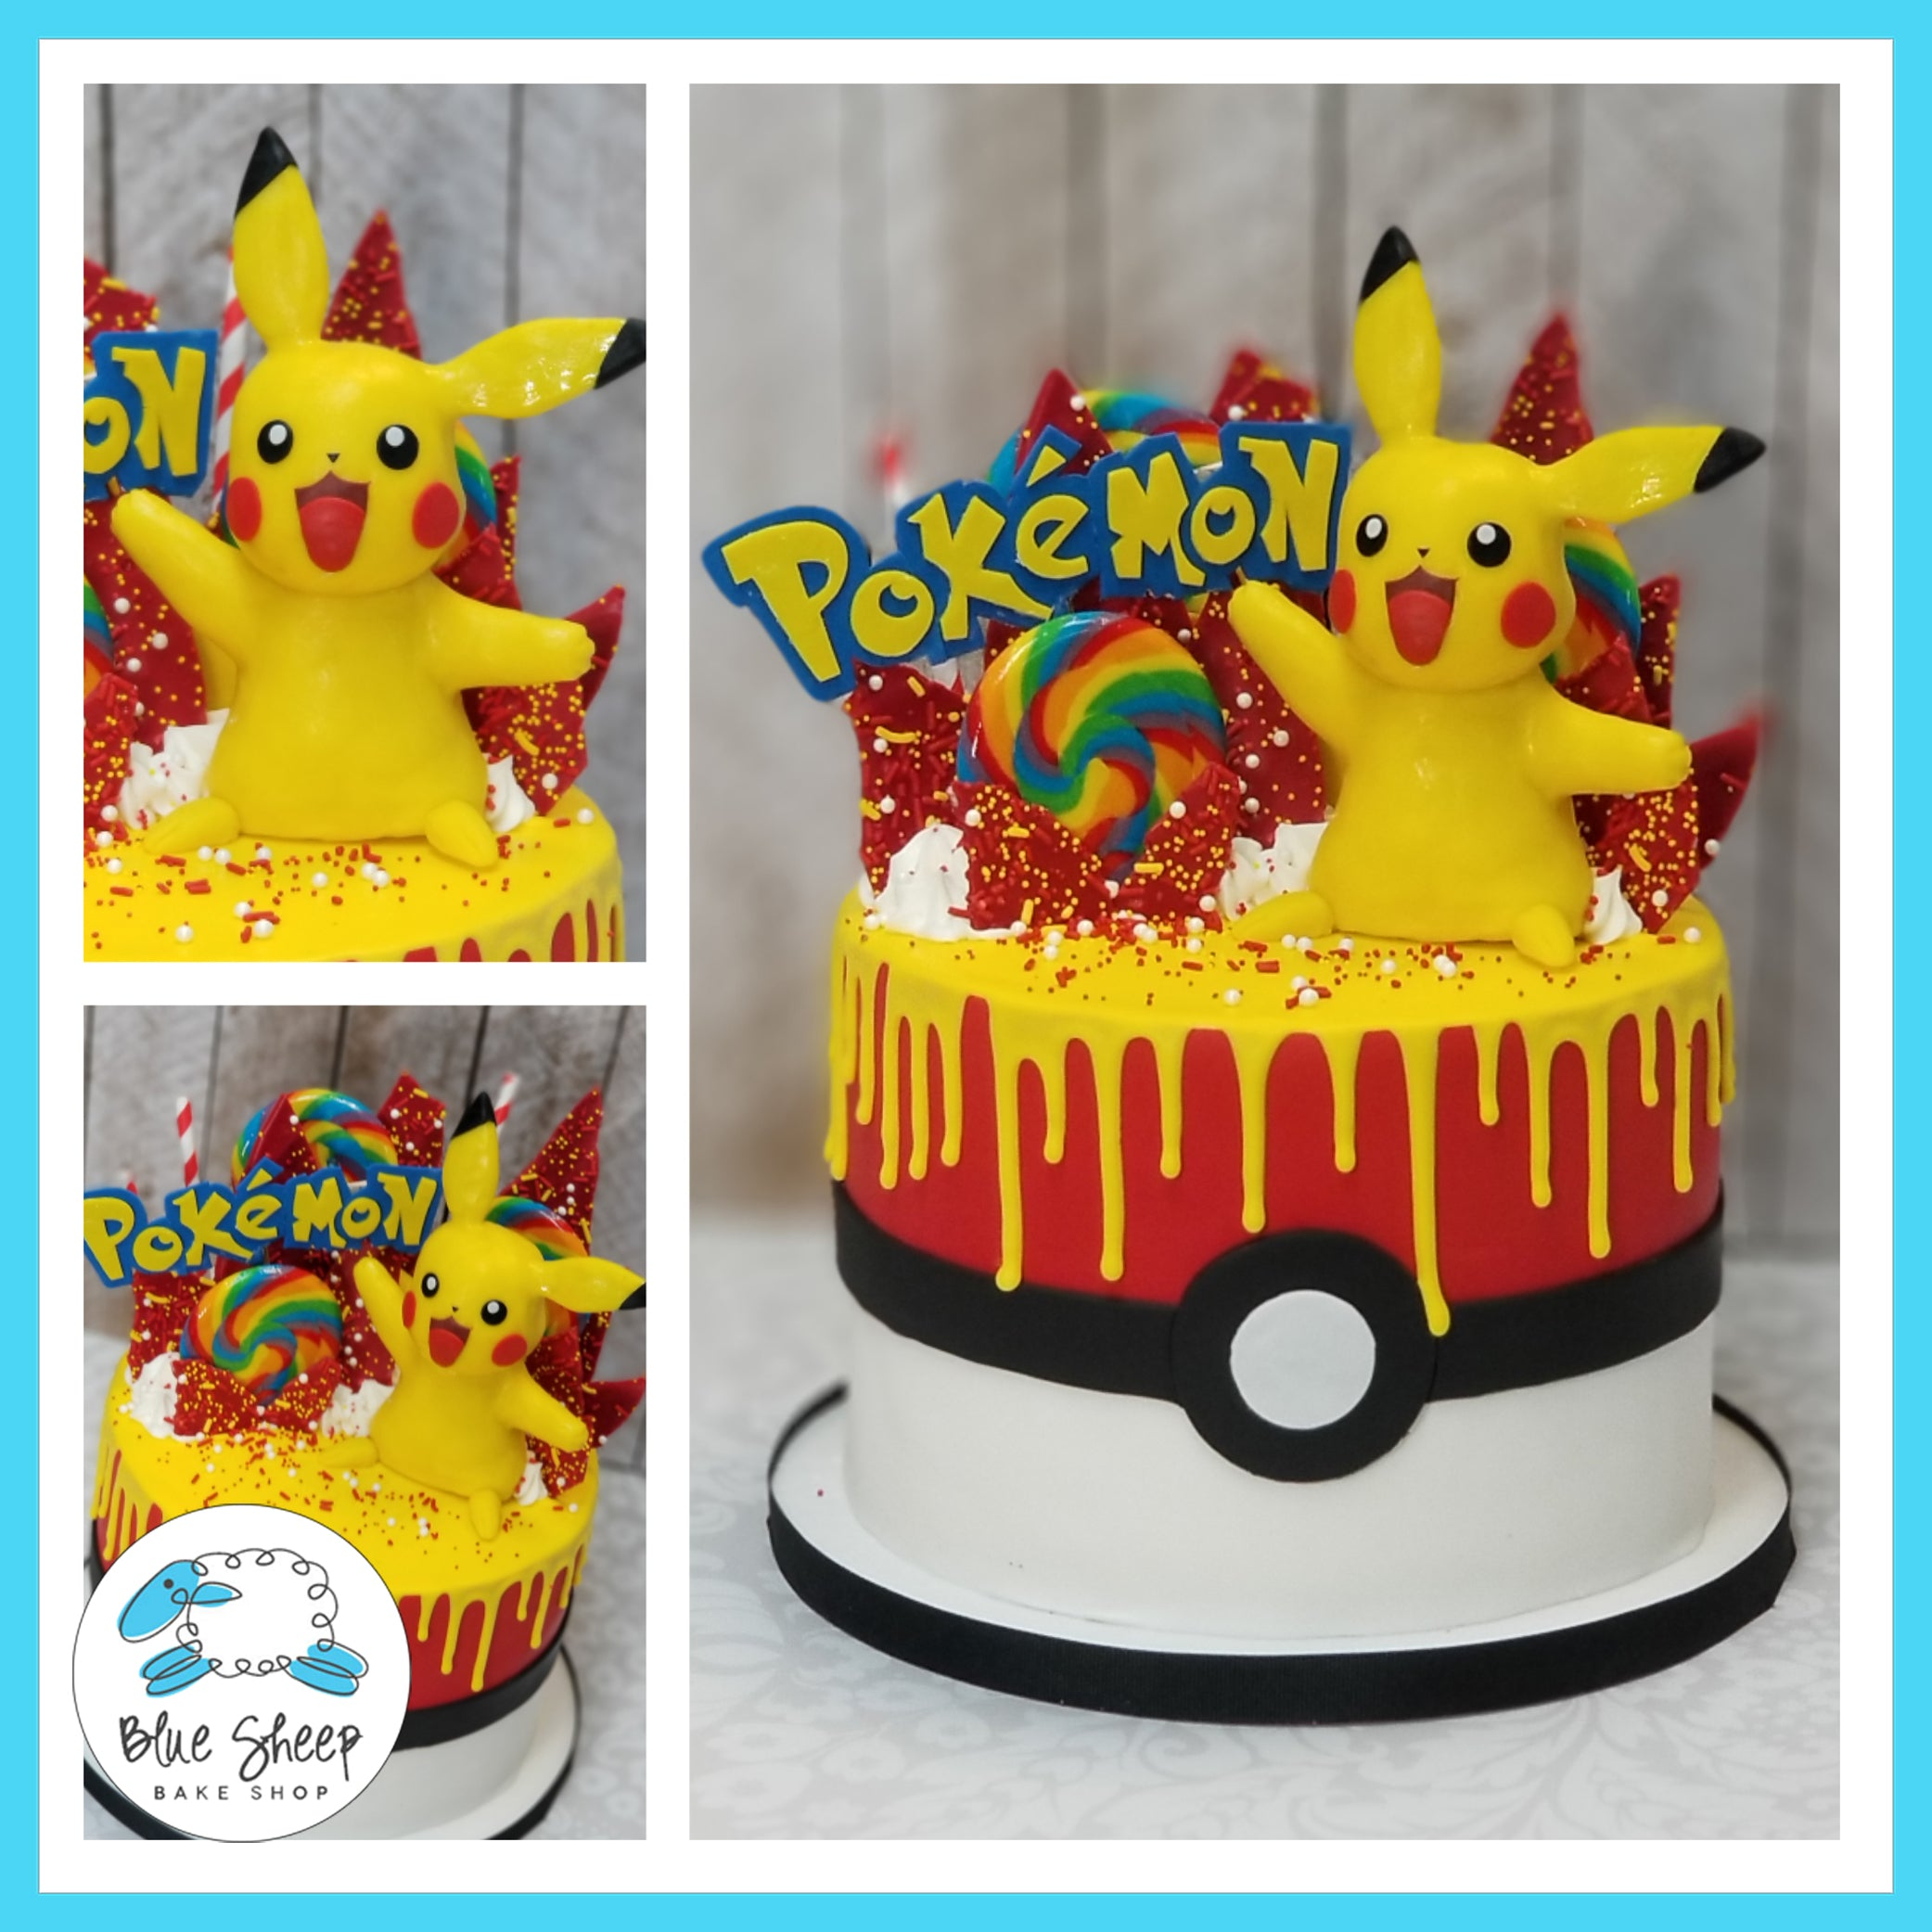 Remarkable Pokemon Birthday Cake Blue Sheep Bake Shop Personalised Birthday Cards Bromeletsinfo